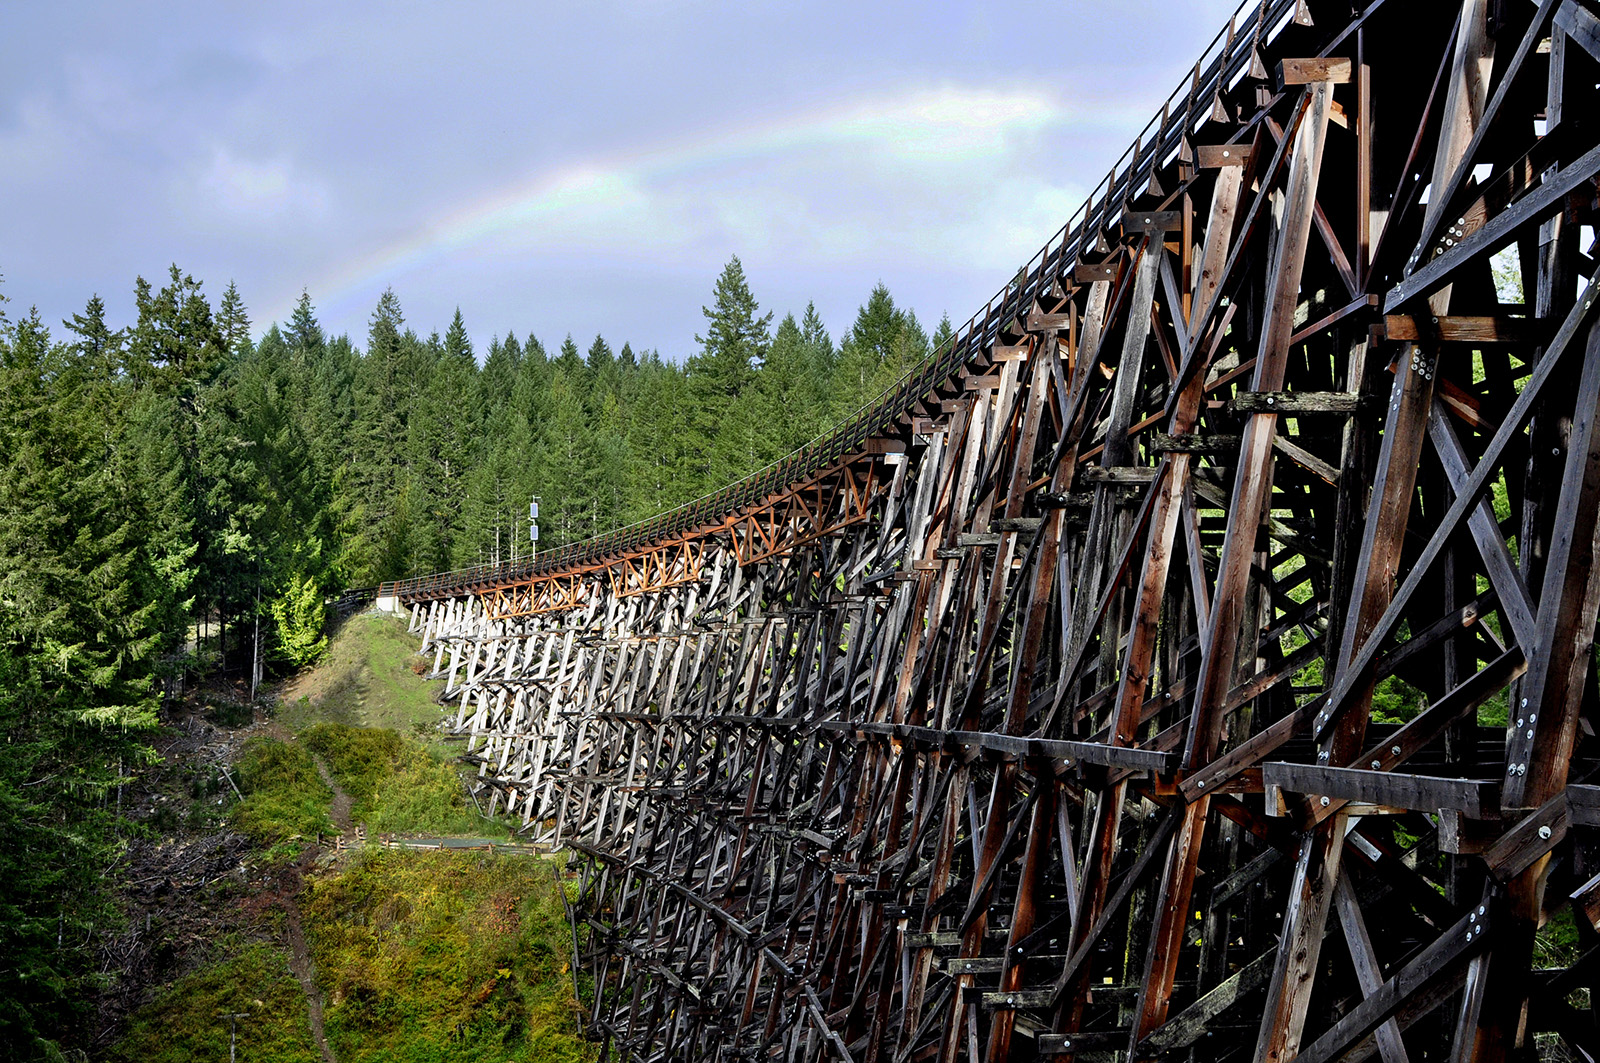 Kinsol Trestle cowichan valley Vancouver Island